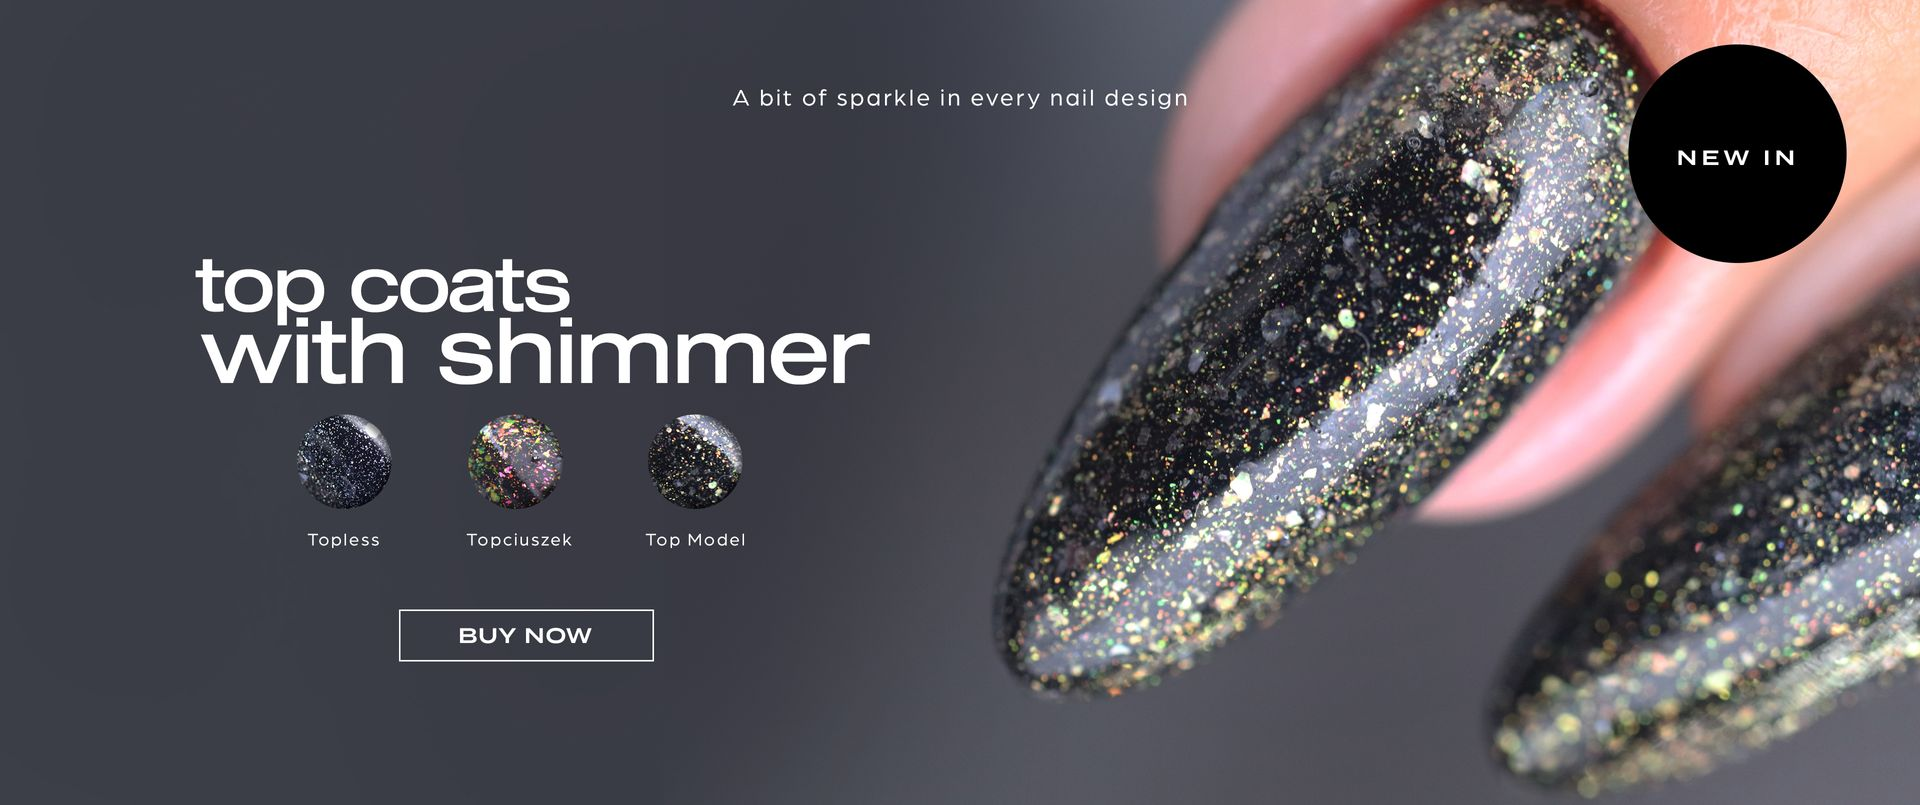 Top Coats with Shimmer.  A bit od sparkle in every nail design